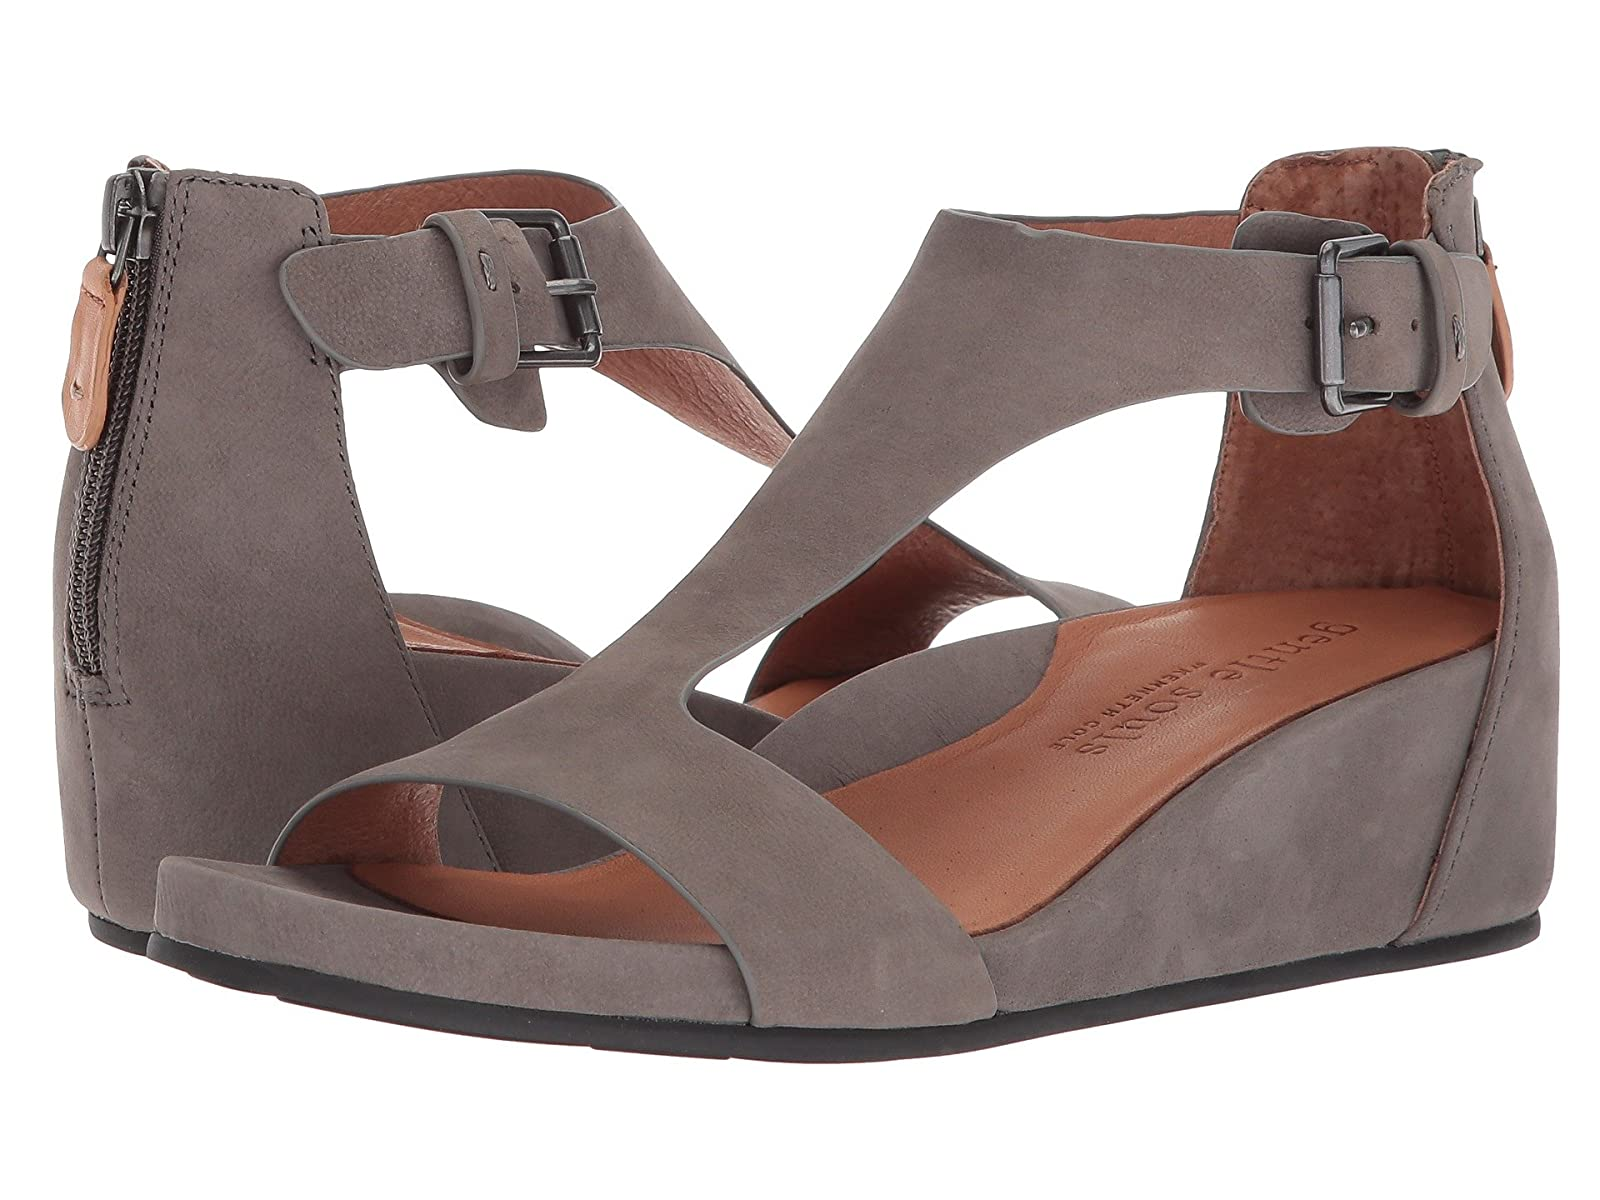 Gentle Souls by Kenneth Cole GiseleCheap and distinctive eye-catching shoes